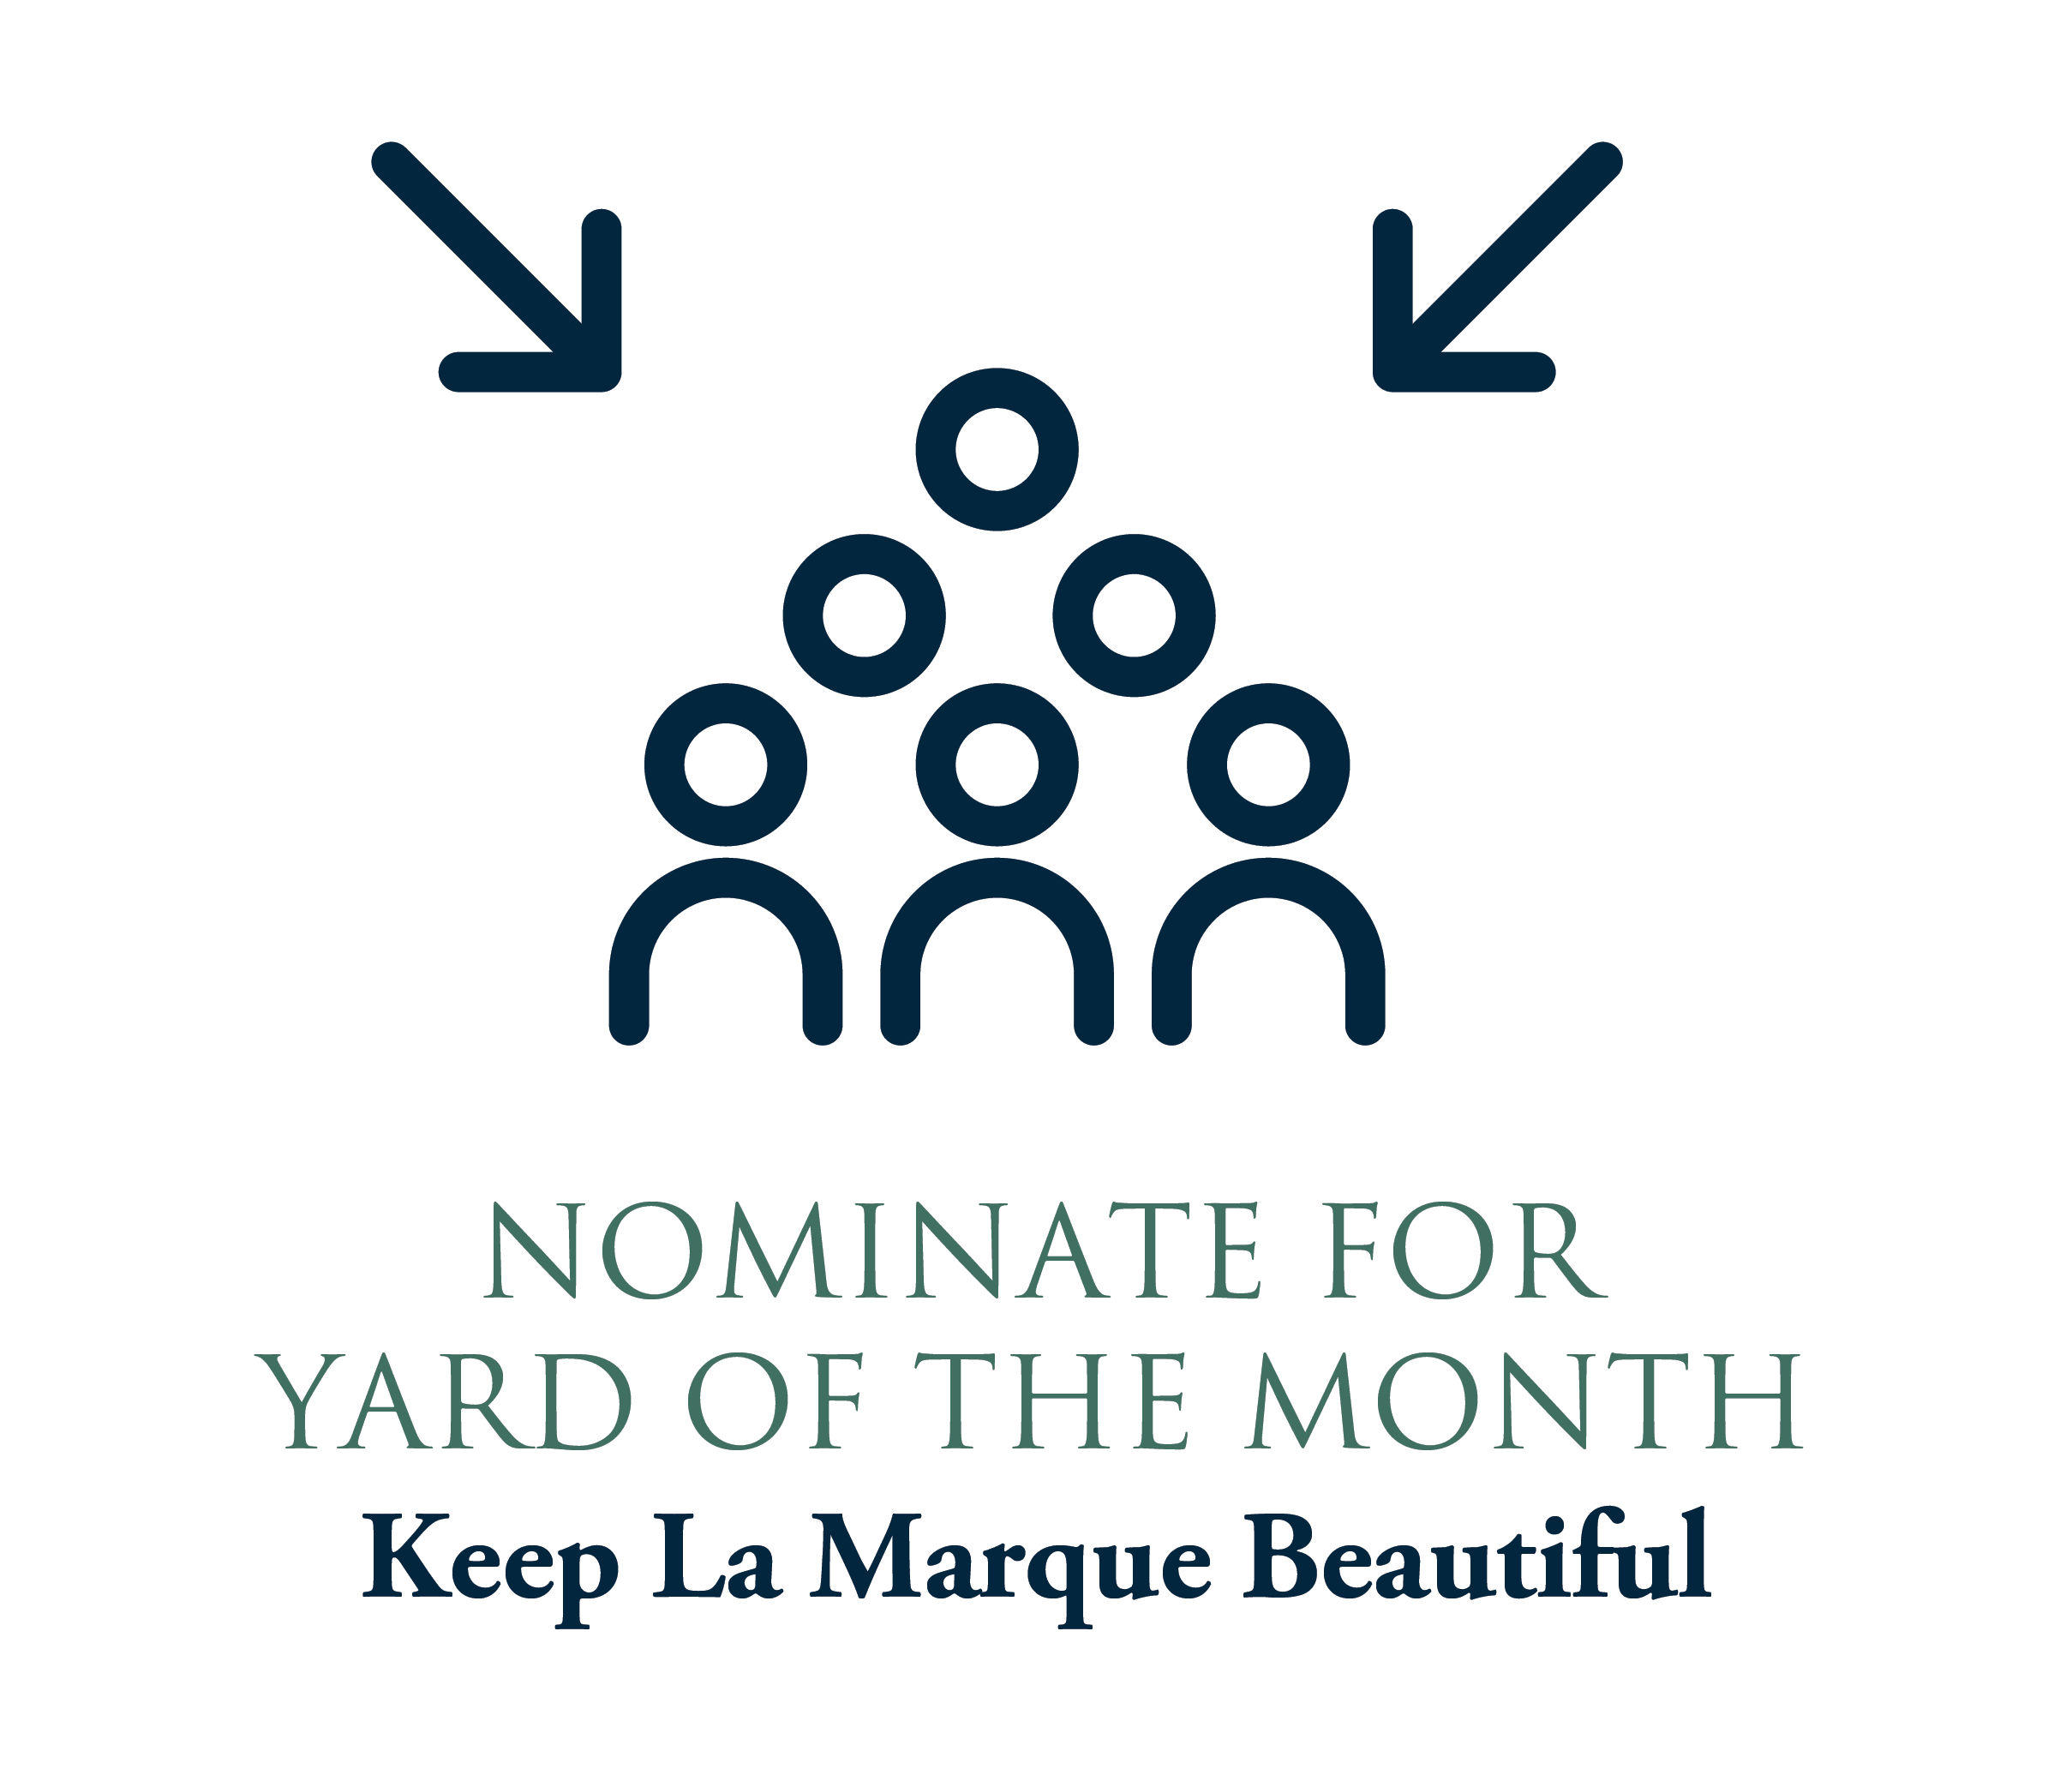 Yard Of The Month Awards La Marque Tx Official Website